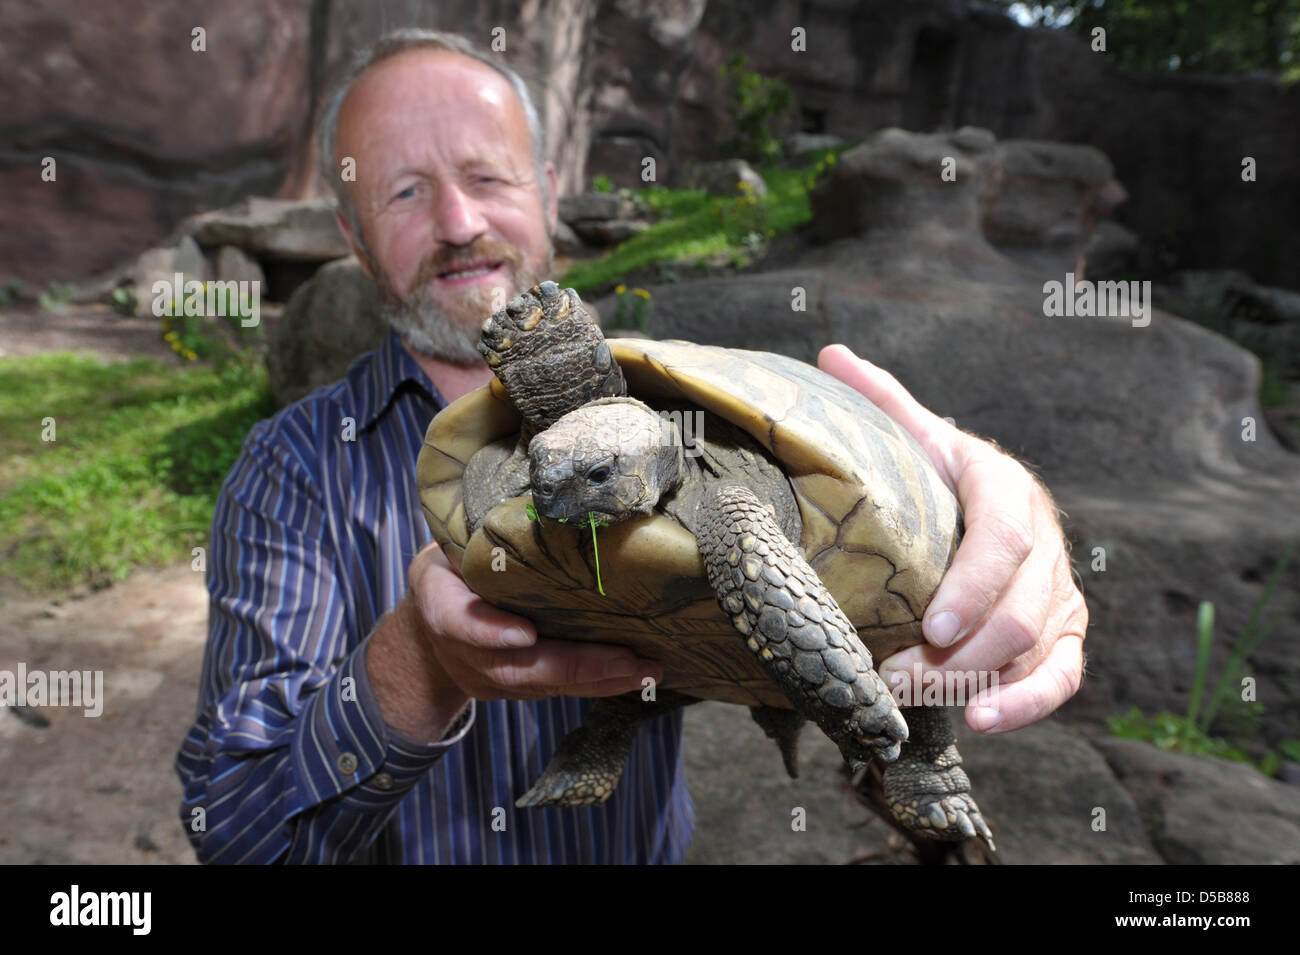 A Hermann's tortoise is held up by the acting zoo director Helmut Mägdefrau in the new enclosure 'Mediterraneum' - Stock Image